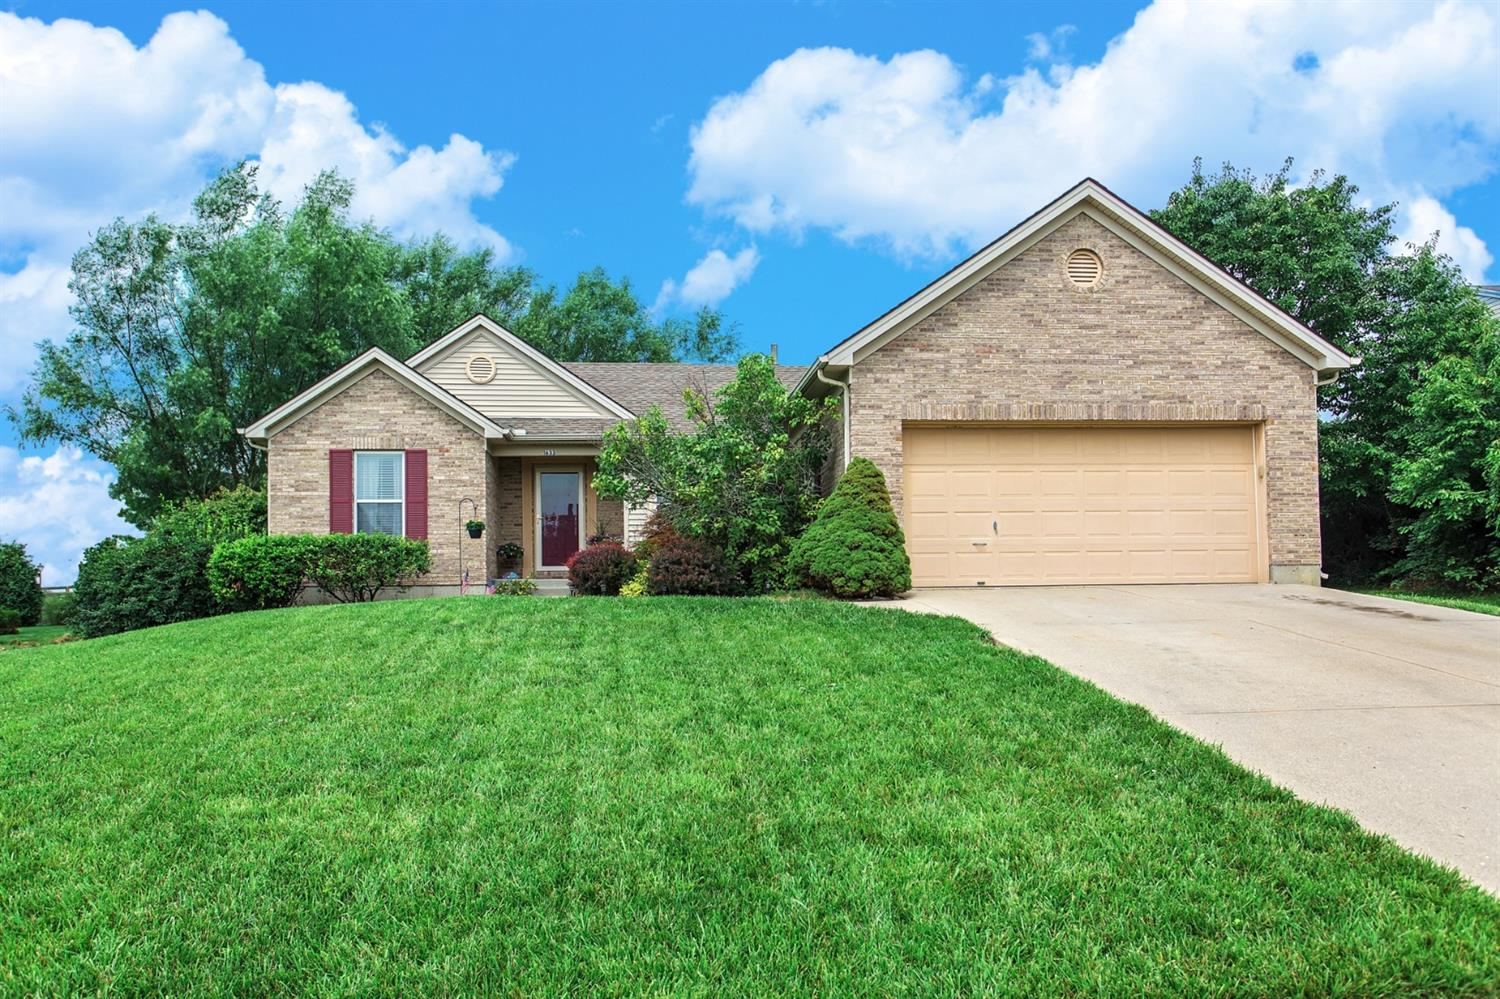 1633 Hastings Court, Lebanon, OH 45036